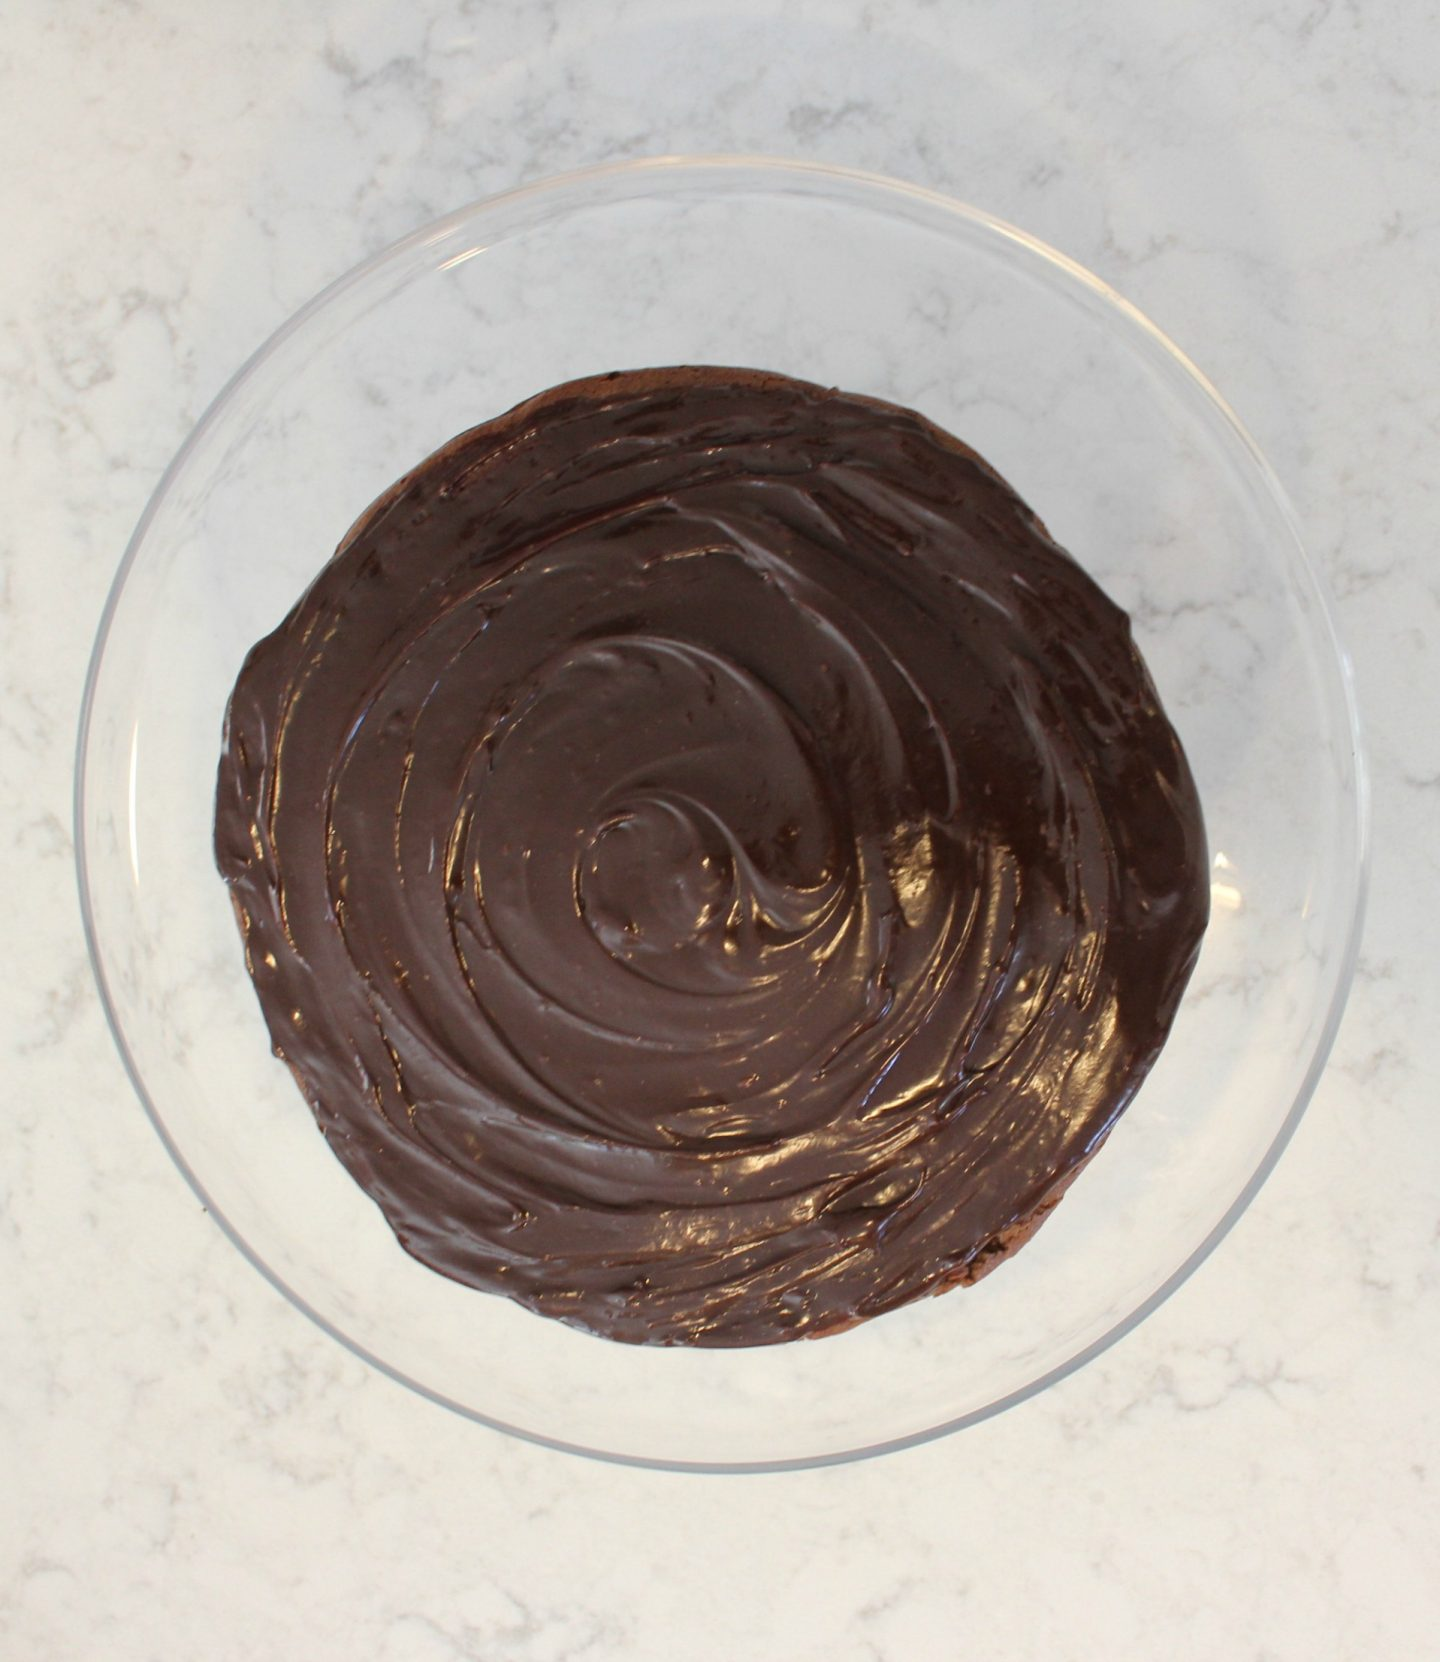 Round chocolate ganache iced cake on clear glass cake pedestal - Hello Lovely Studio